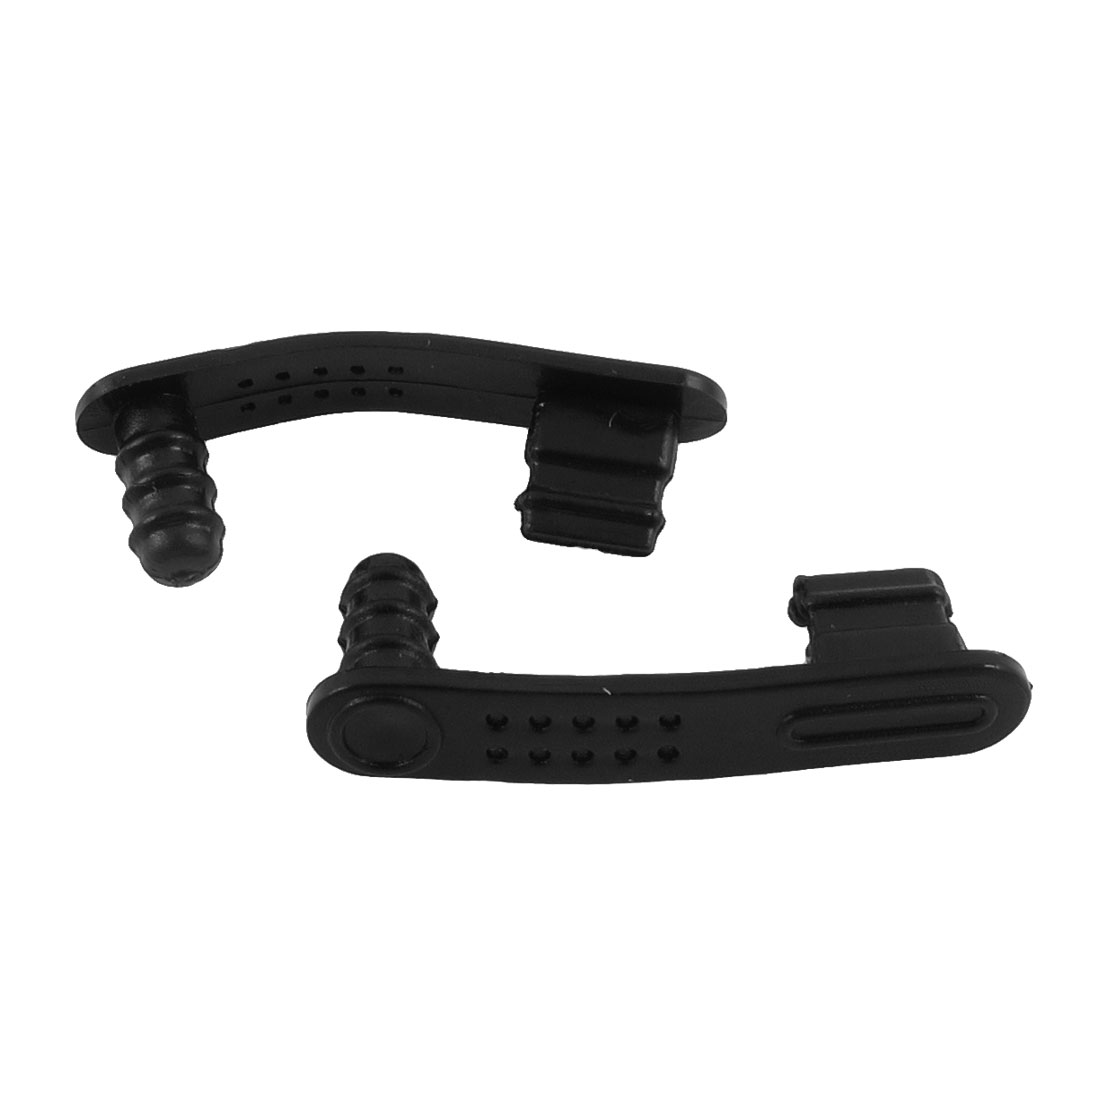 Charger 3.5mm Earphone Anti Dust Stopper Cap 2Pcs Black for Cell Phone